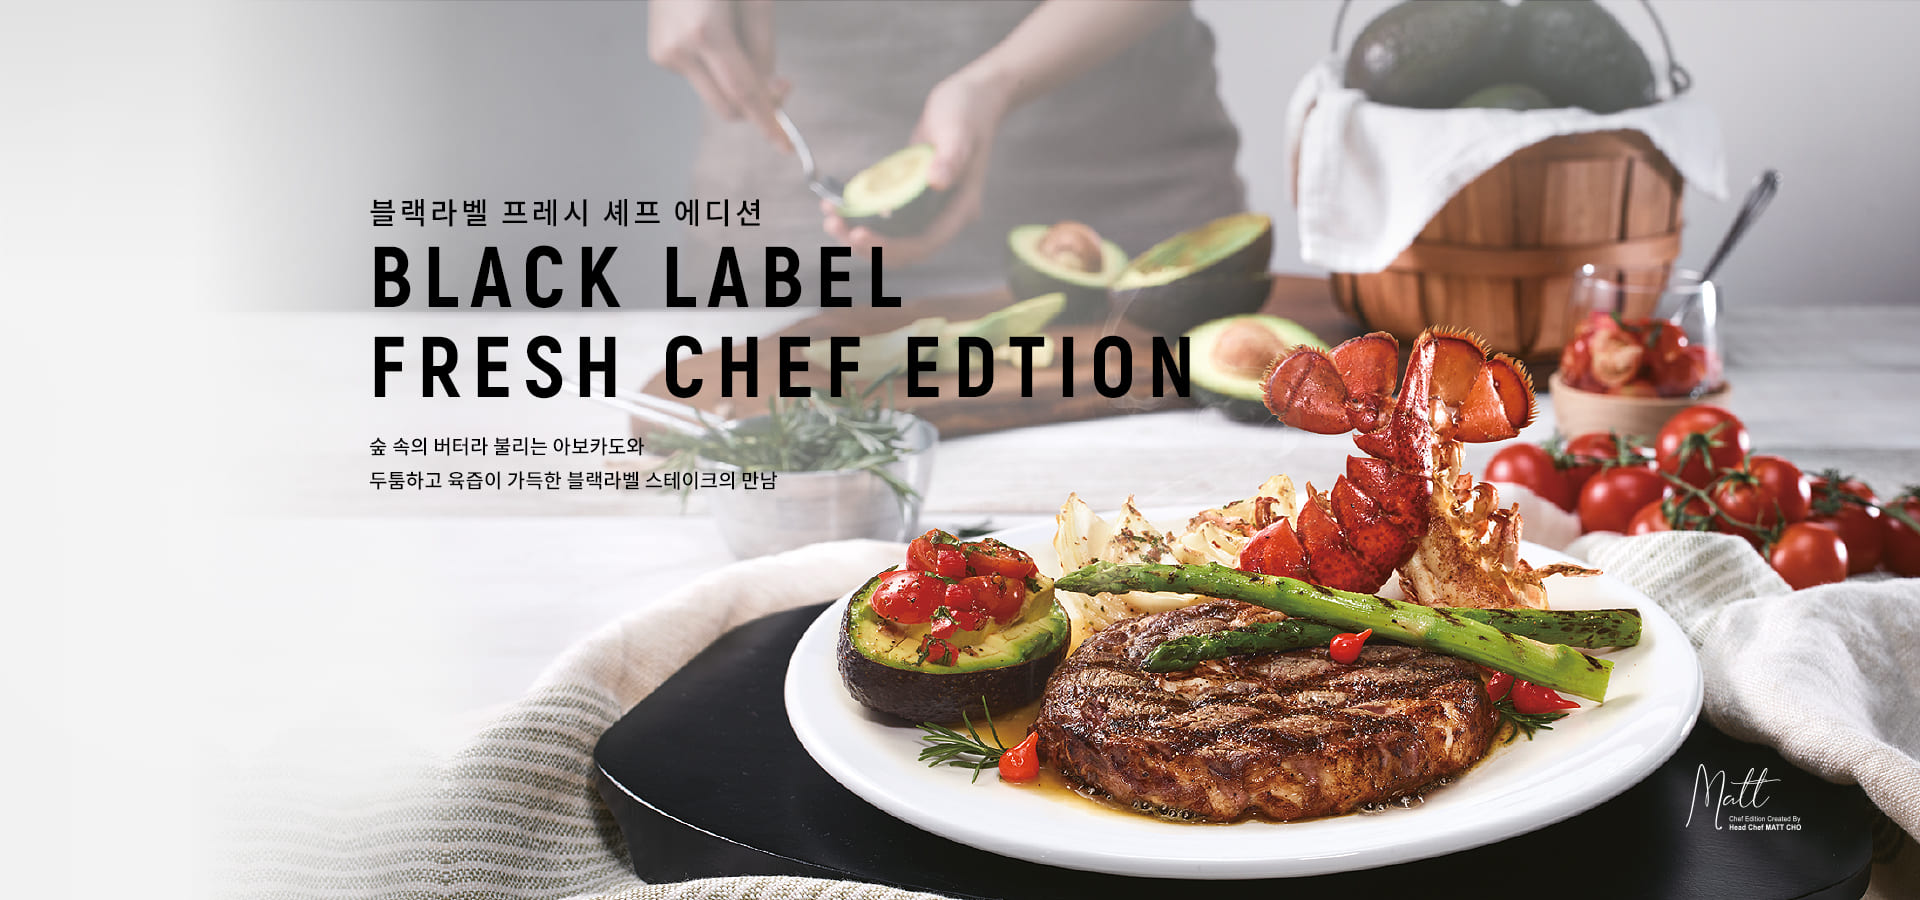 BLACK LABEL FRESH CHEF EDITION